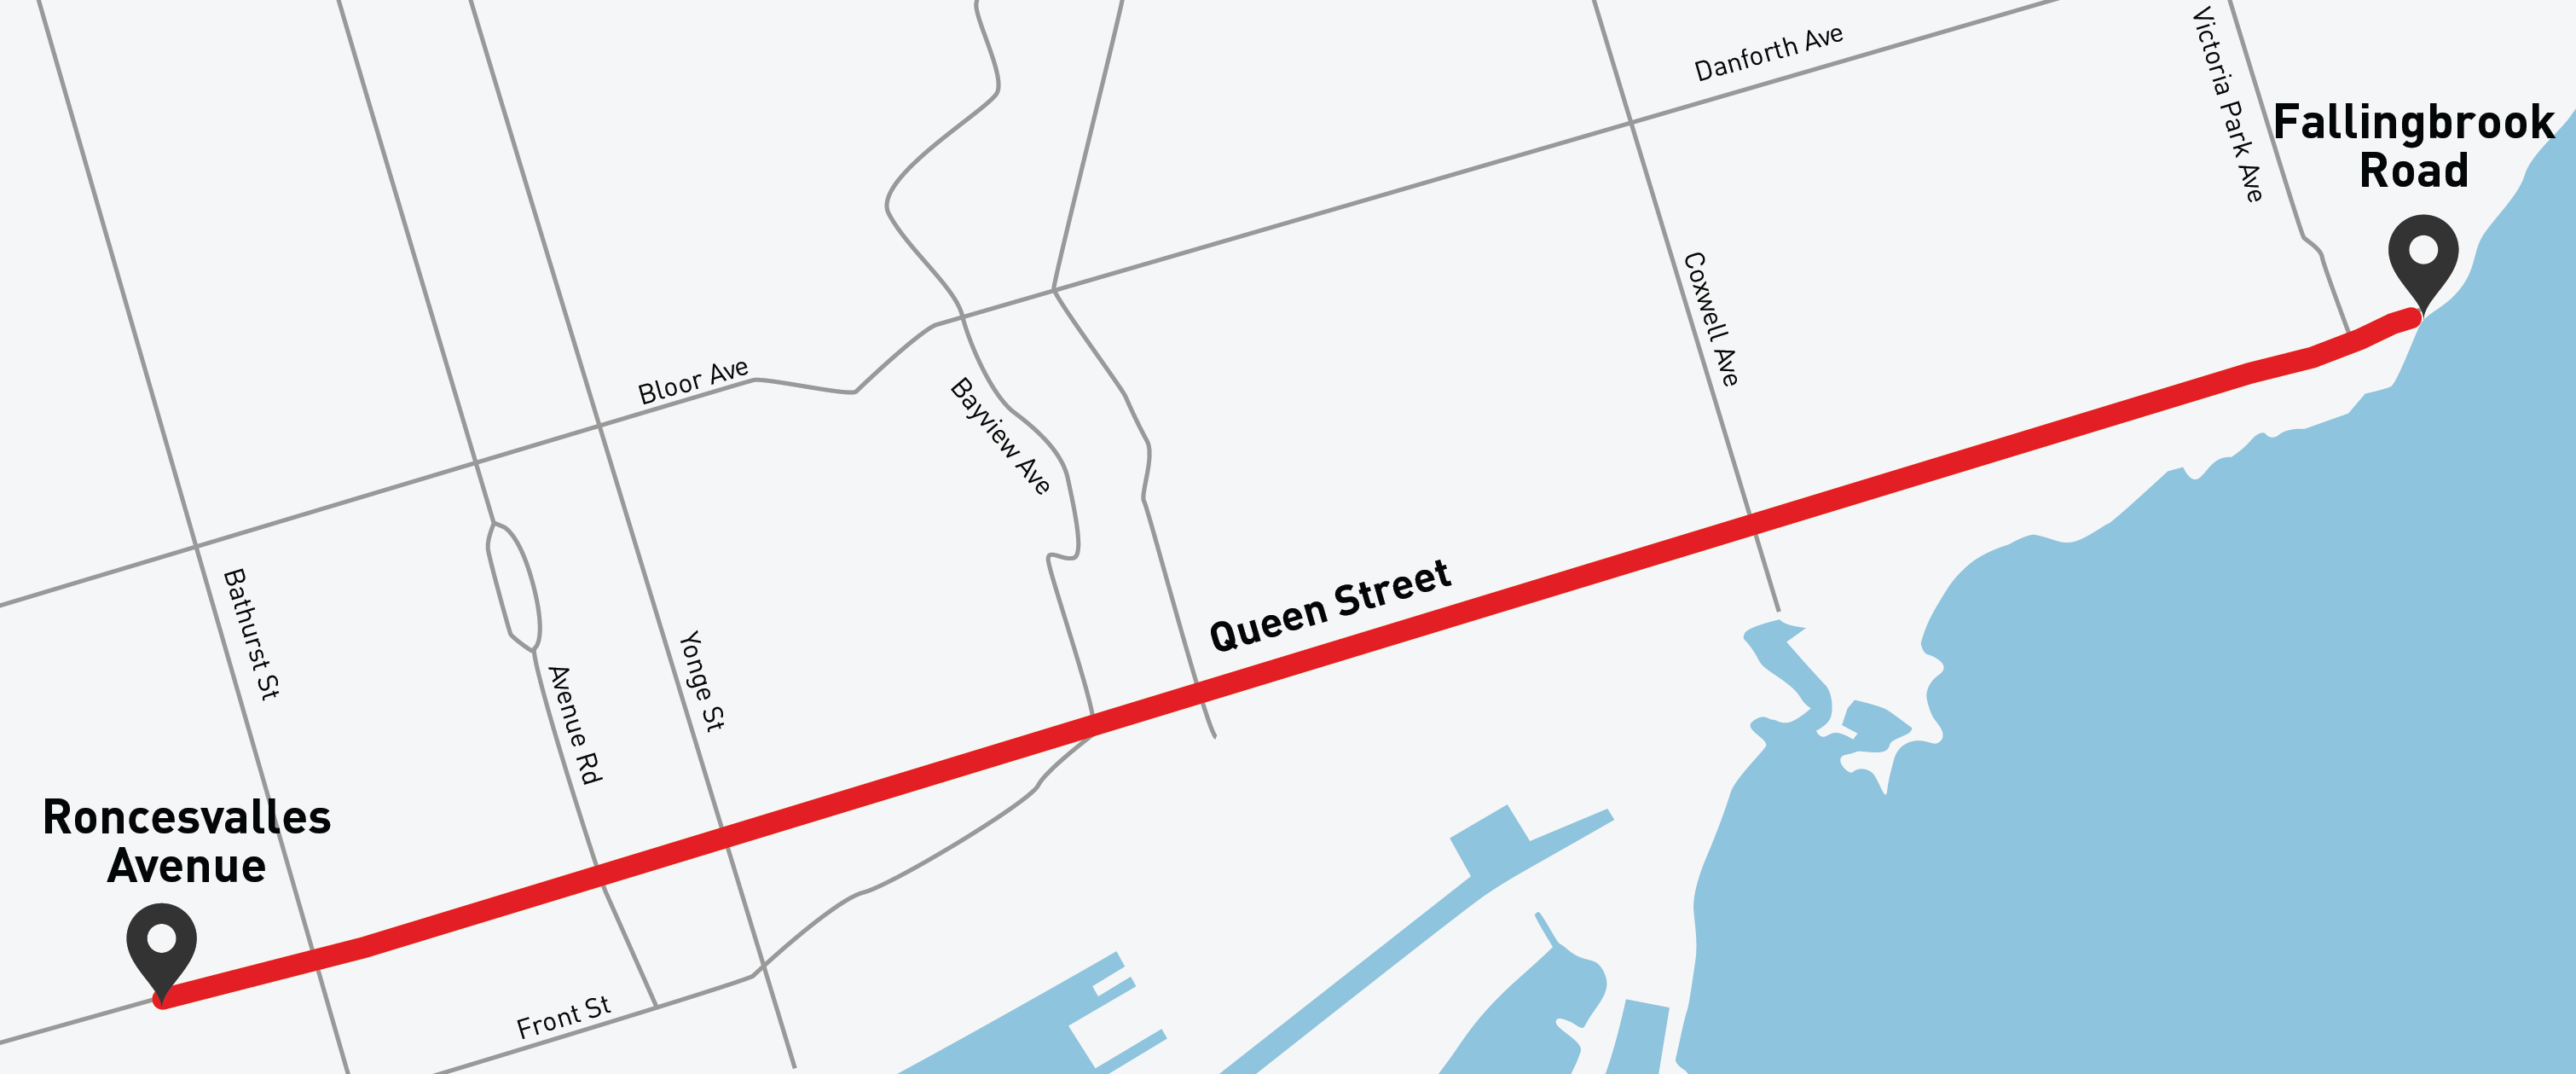 Map showing the towing pilot area which is on Queen Street from Roncesvalles Avenue to Fallingbrook Road.